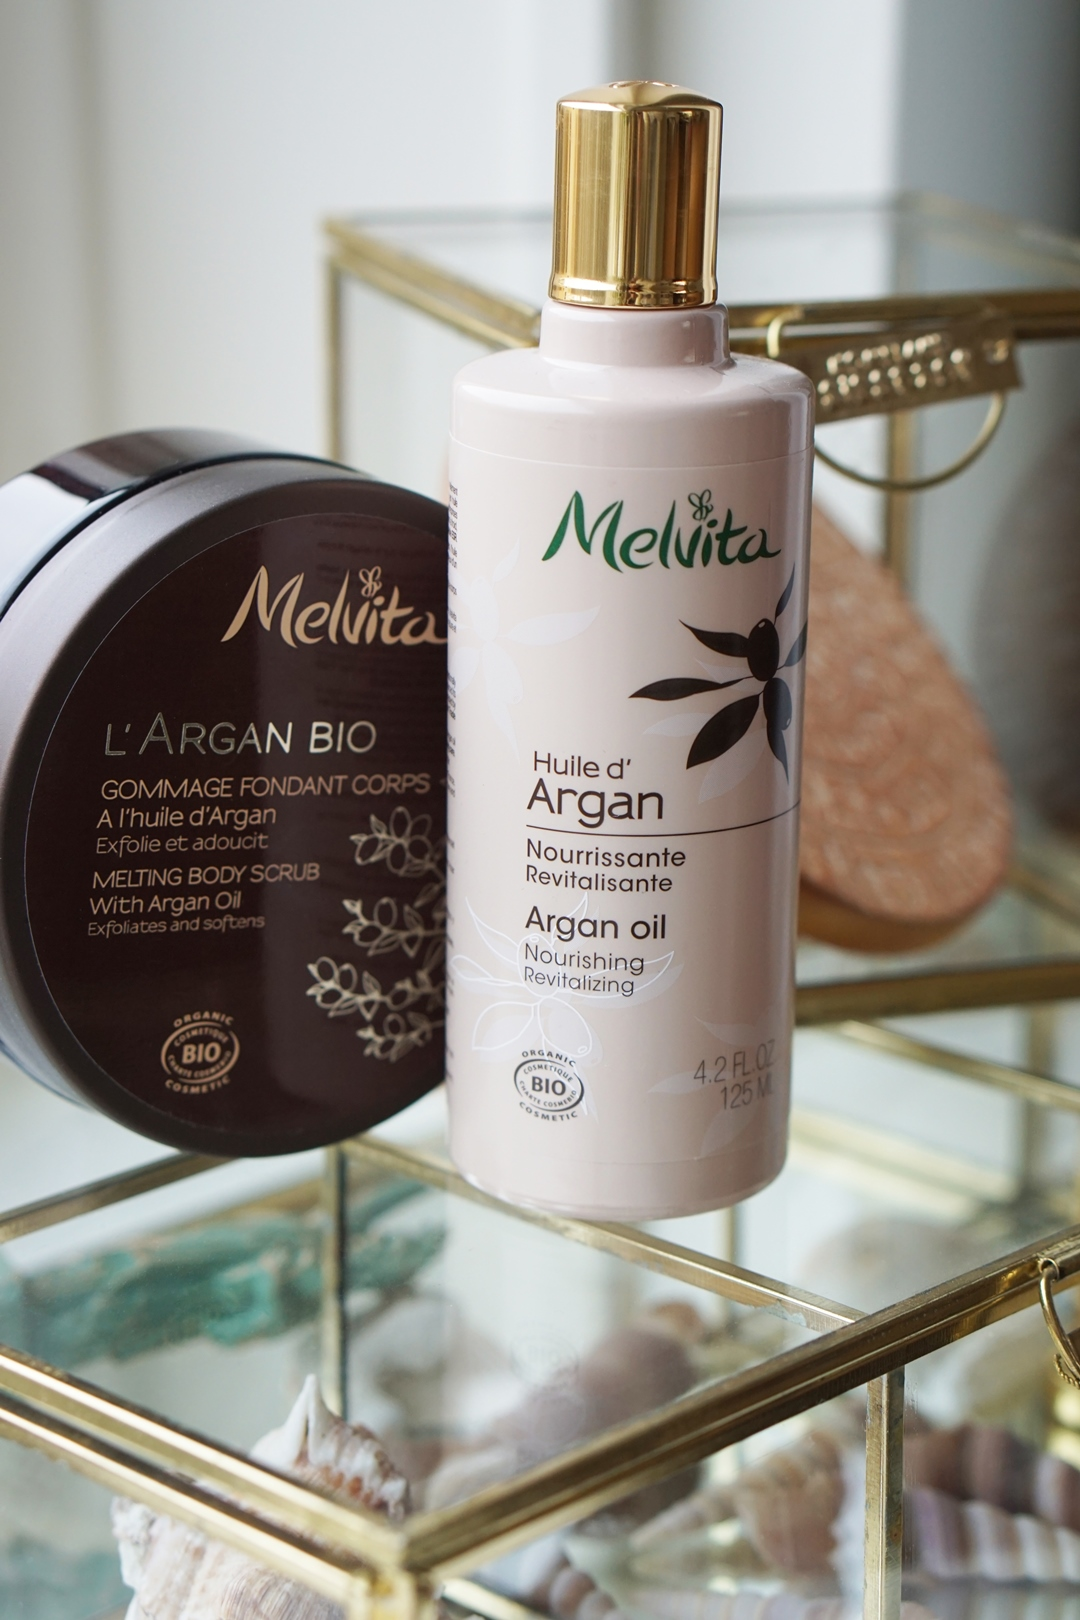 Melvita Argan Oil & Melting Body Scrub